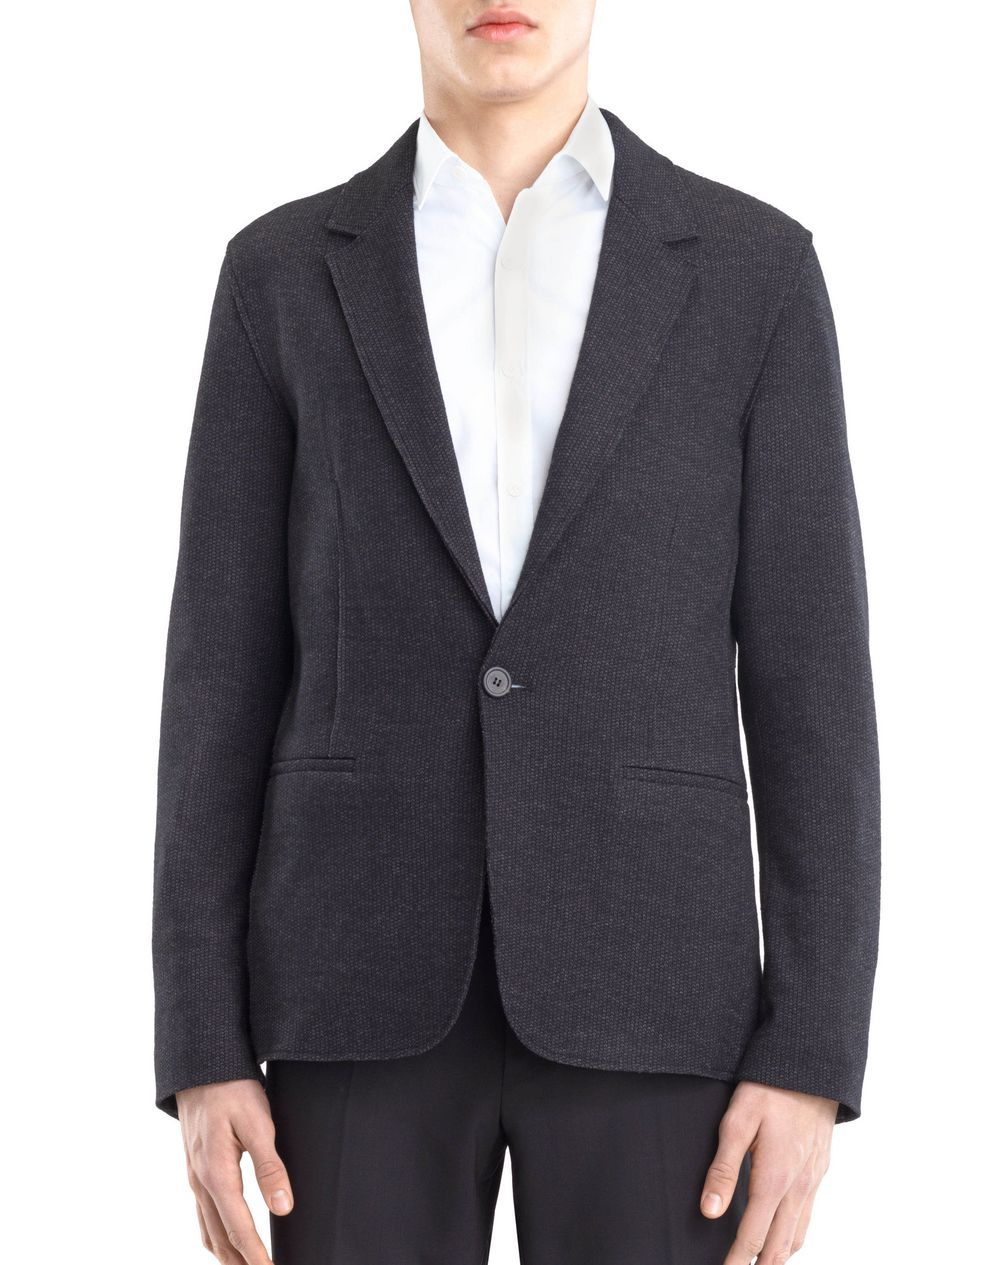 JERSEY DECONSTRUCTED JACKET - Lanvin